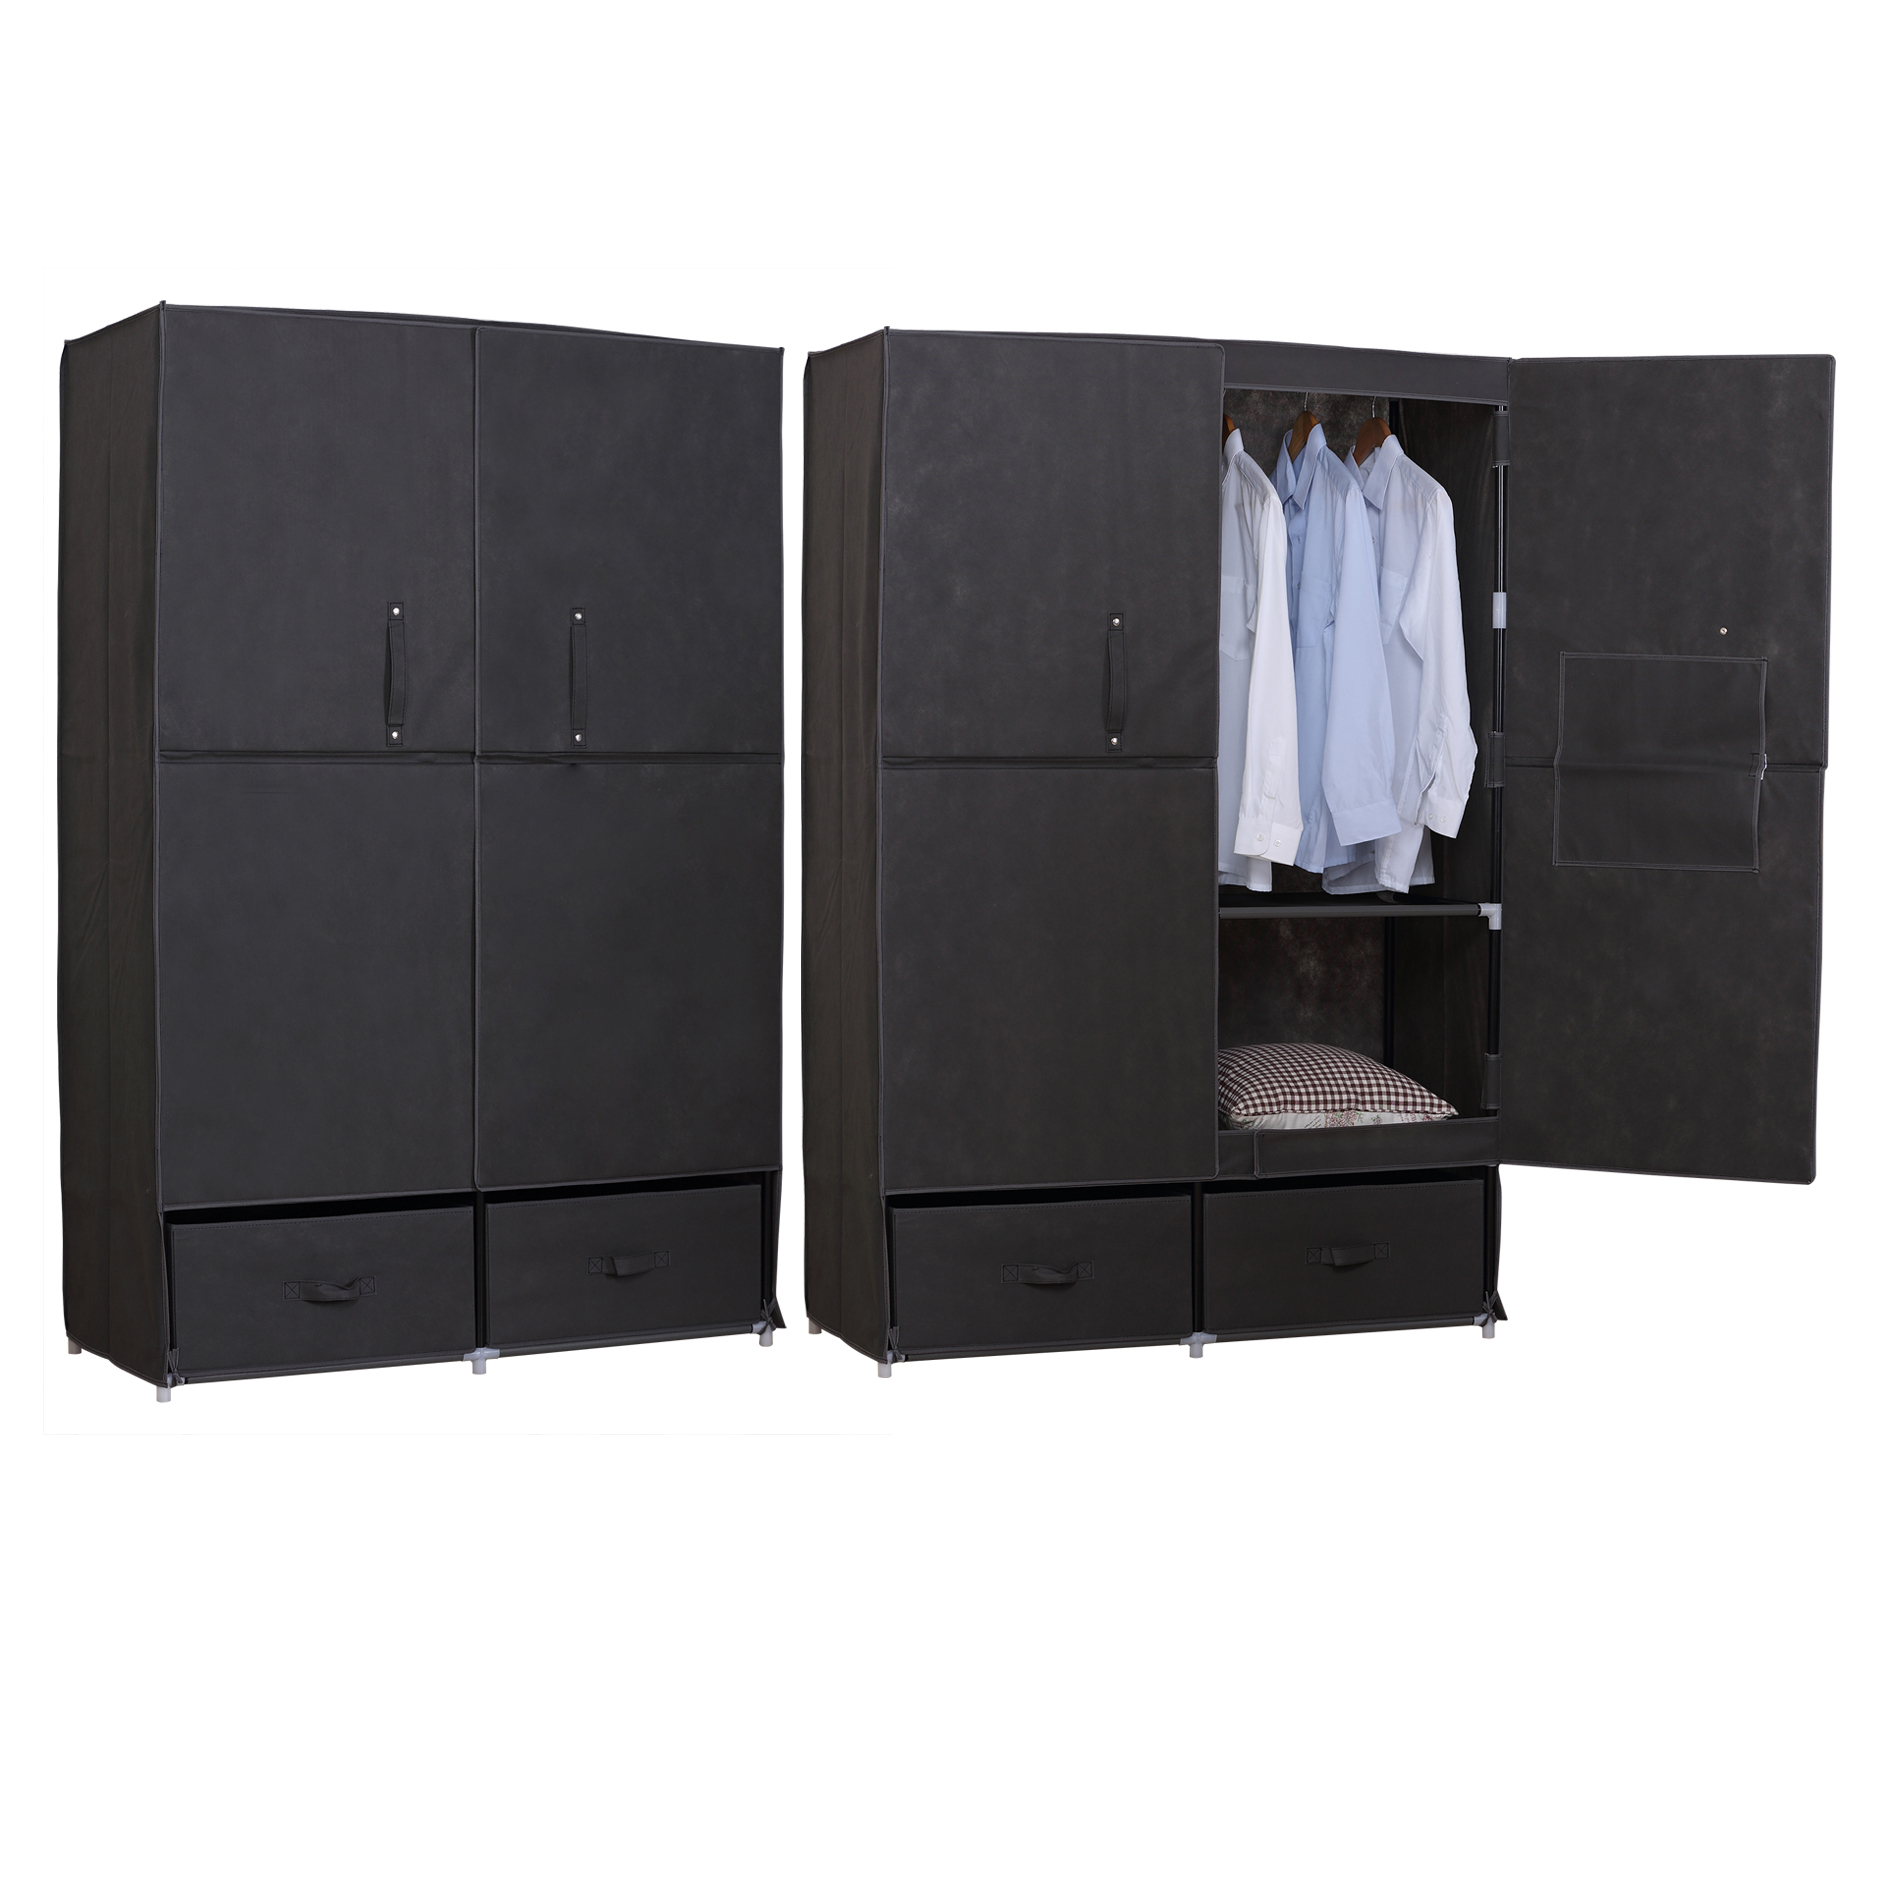 faltschrank kleiderschrank garderobenschrank campingschrank stoffschrank 173 ebay. Black Bedroom Furniture Sets. Home Design Ideas